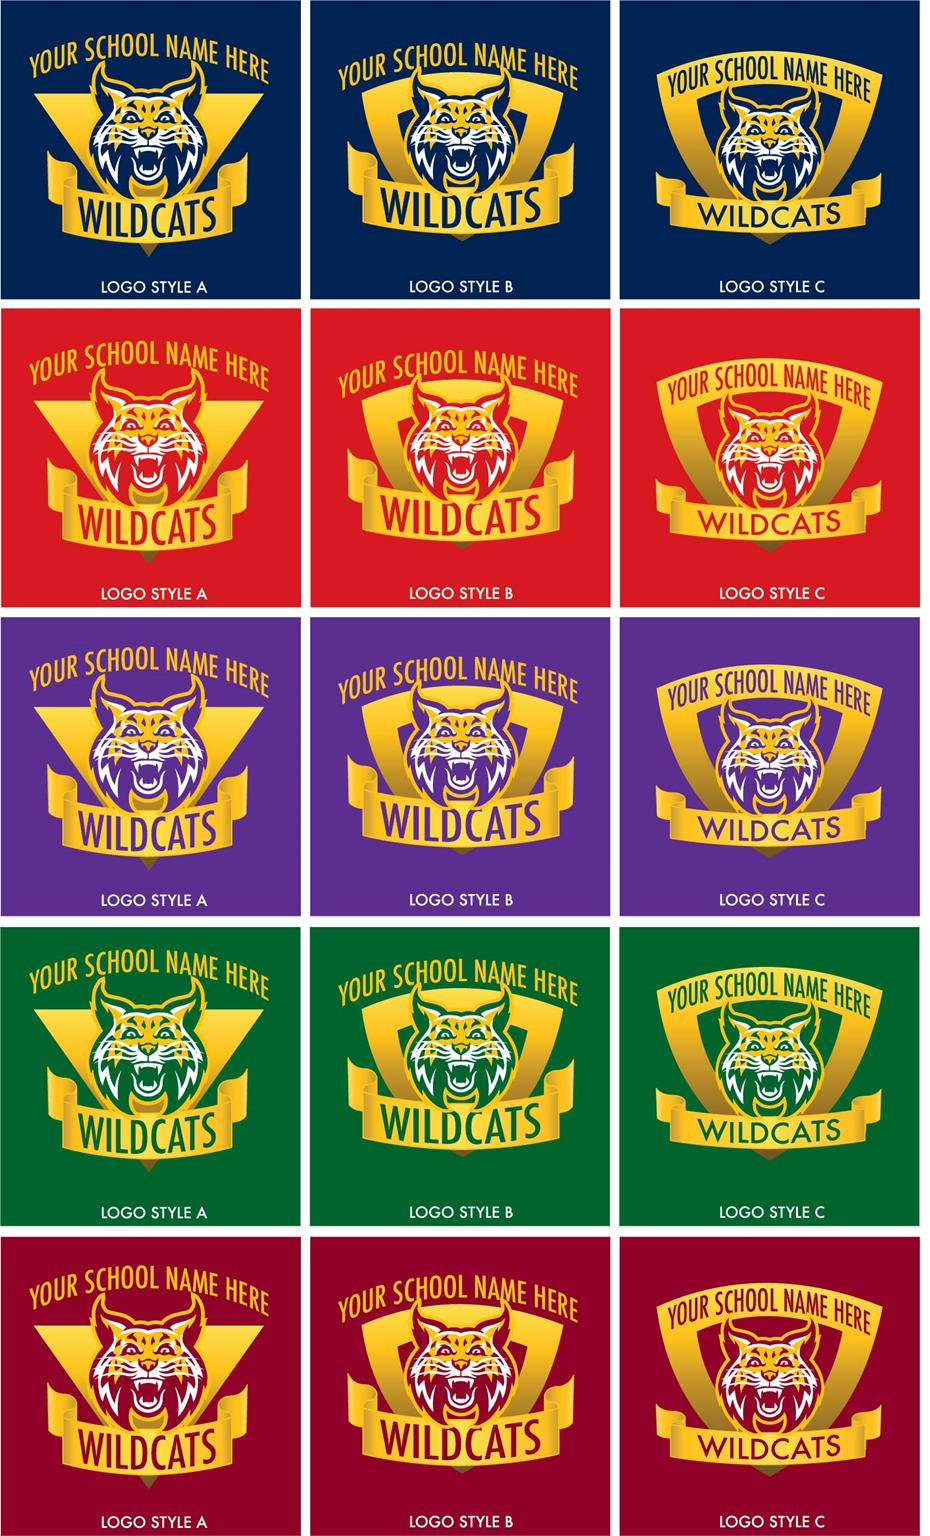 Wildcat Logo School Mascot Graphic